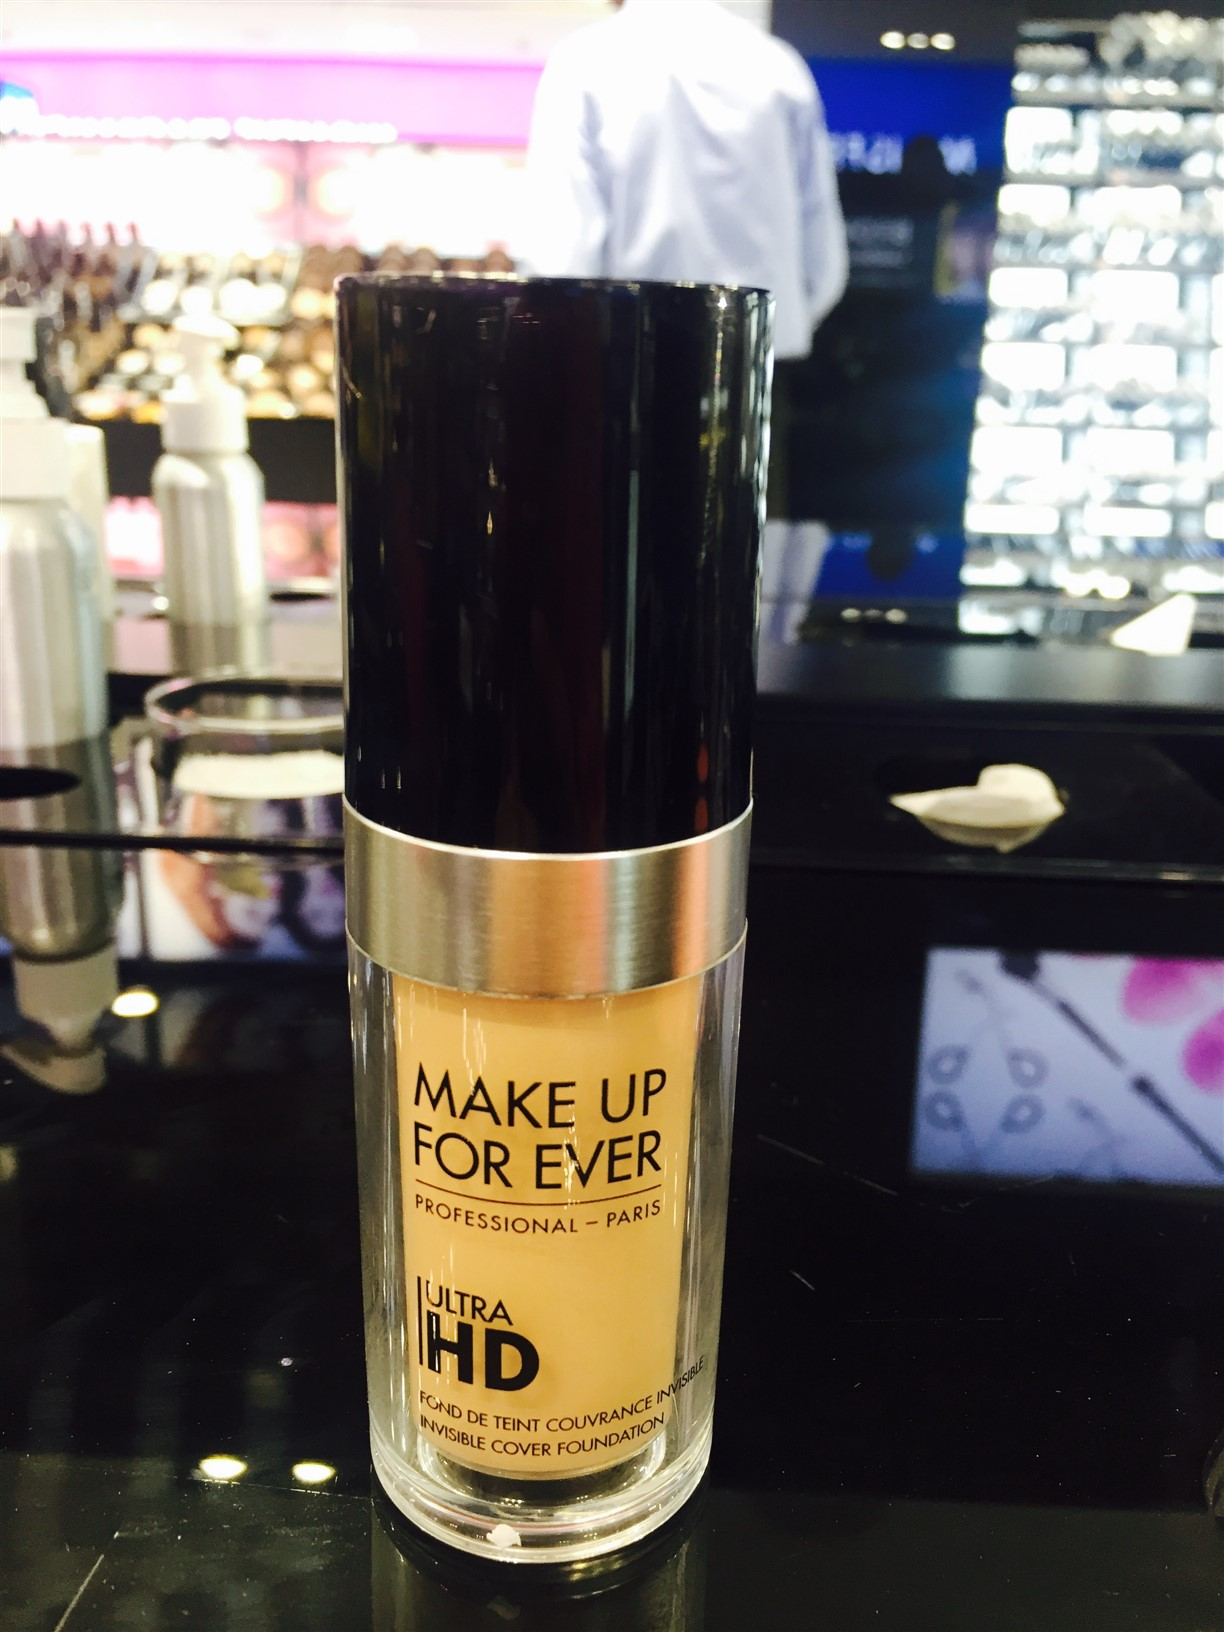 make up forever ulta HD foundation the jeromy diaries (1224 x 1632)